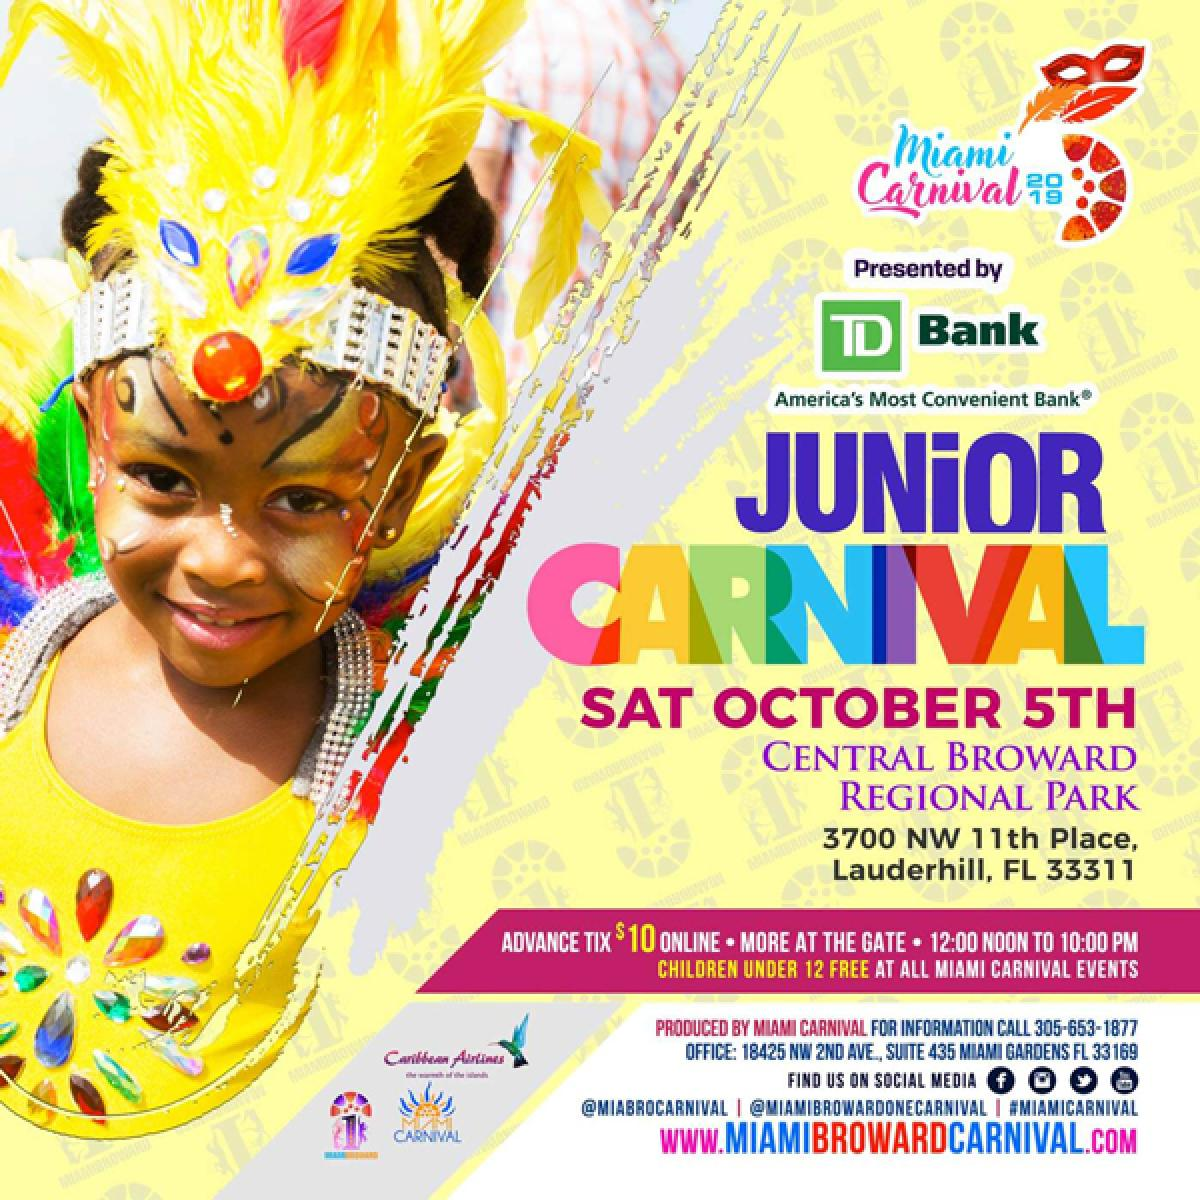 Junior Carnival flyer or graphic.